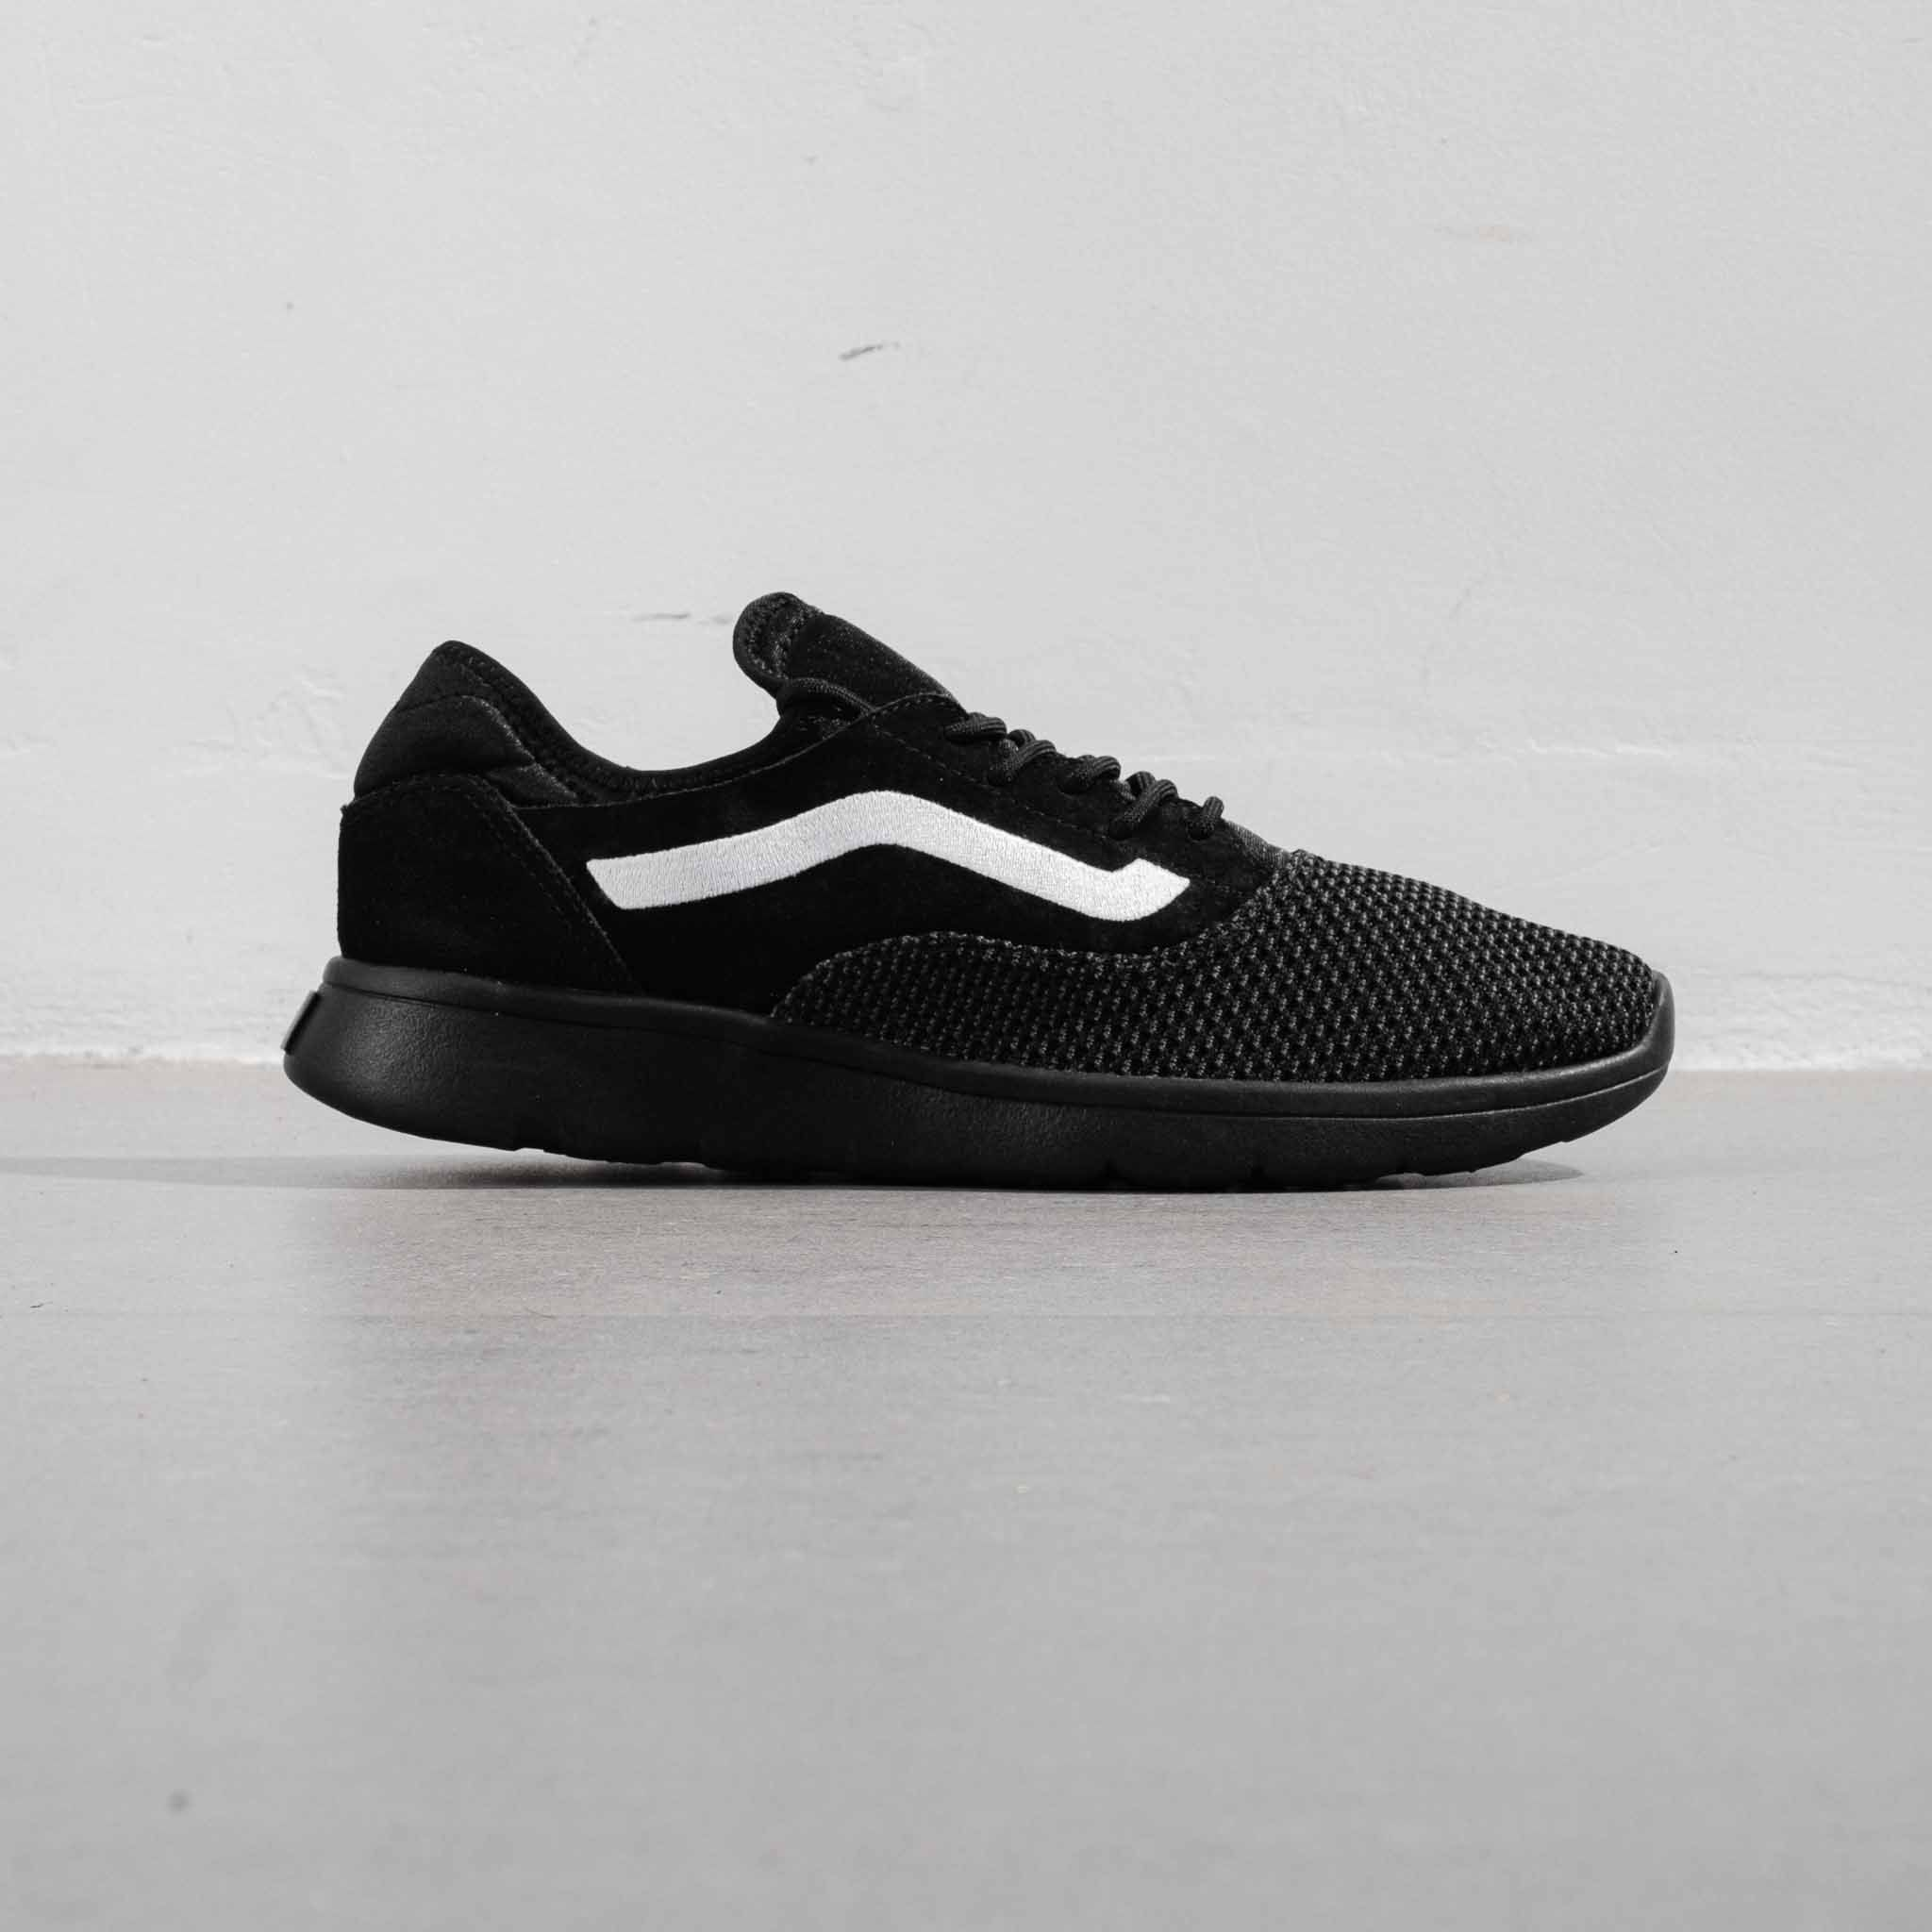 Vans Ultracush All Black Line White - 41